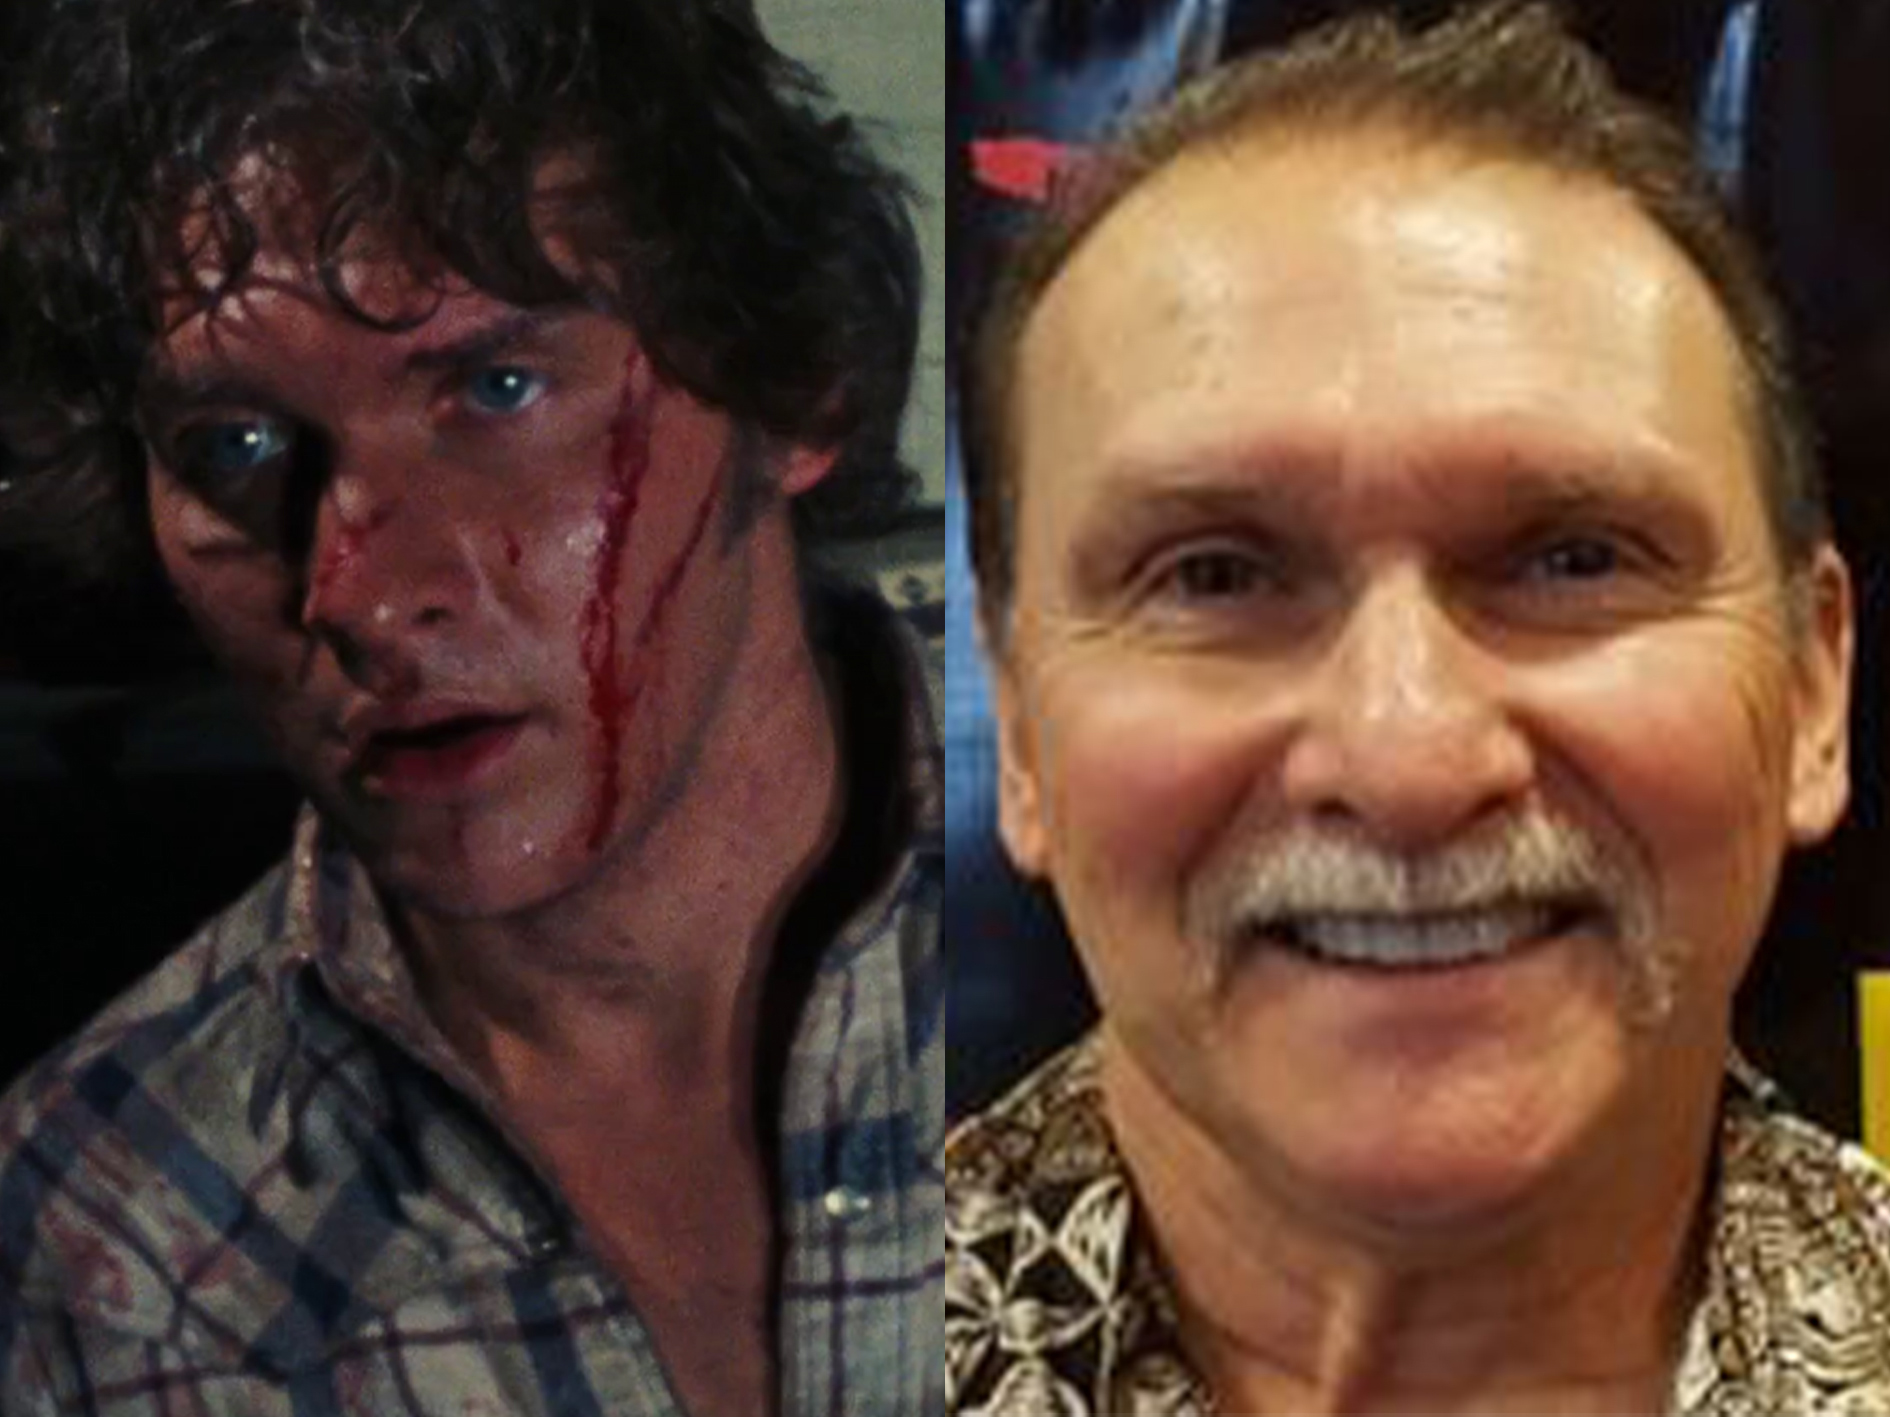 The Evil Dead Hal DelRich You Won't Believe What The Cast Of The Evil Dead Look Like Now!